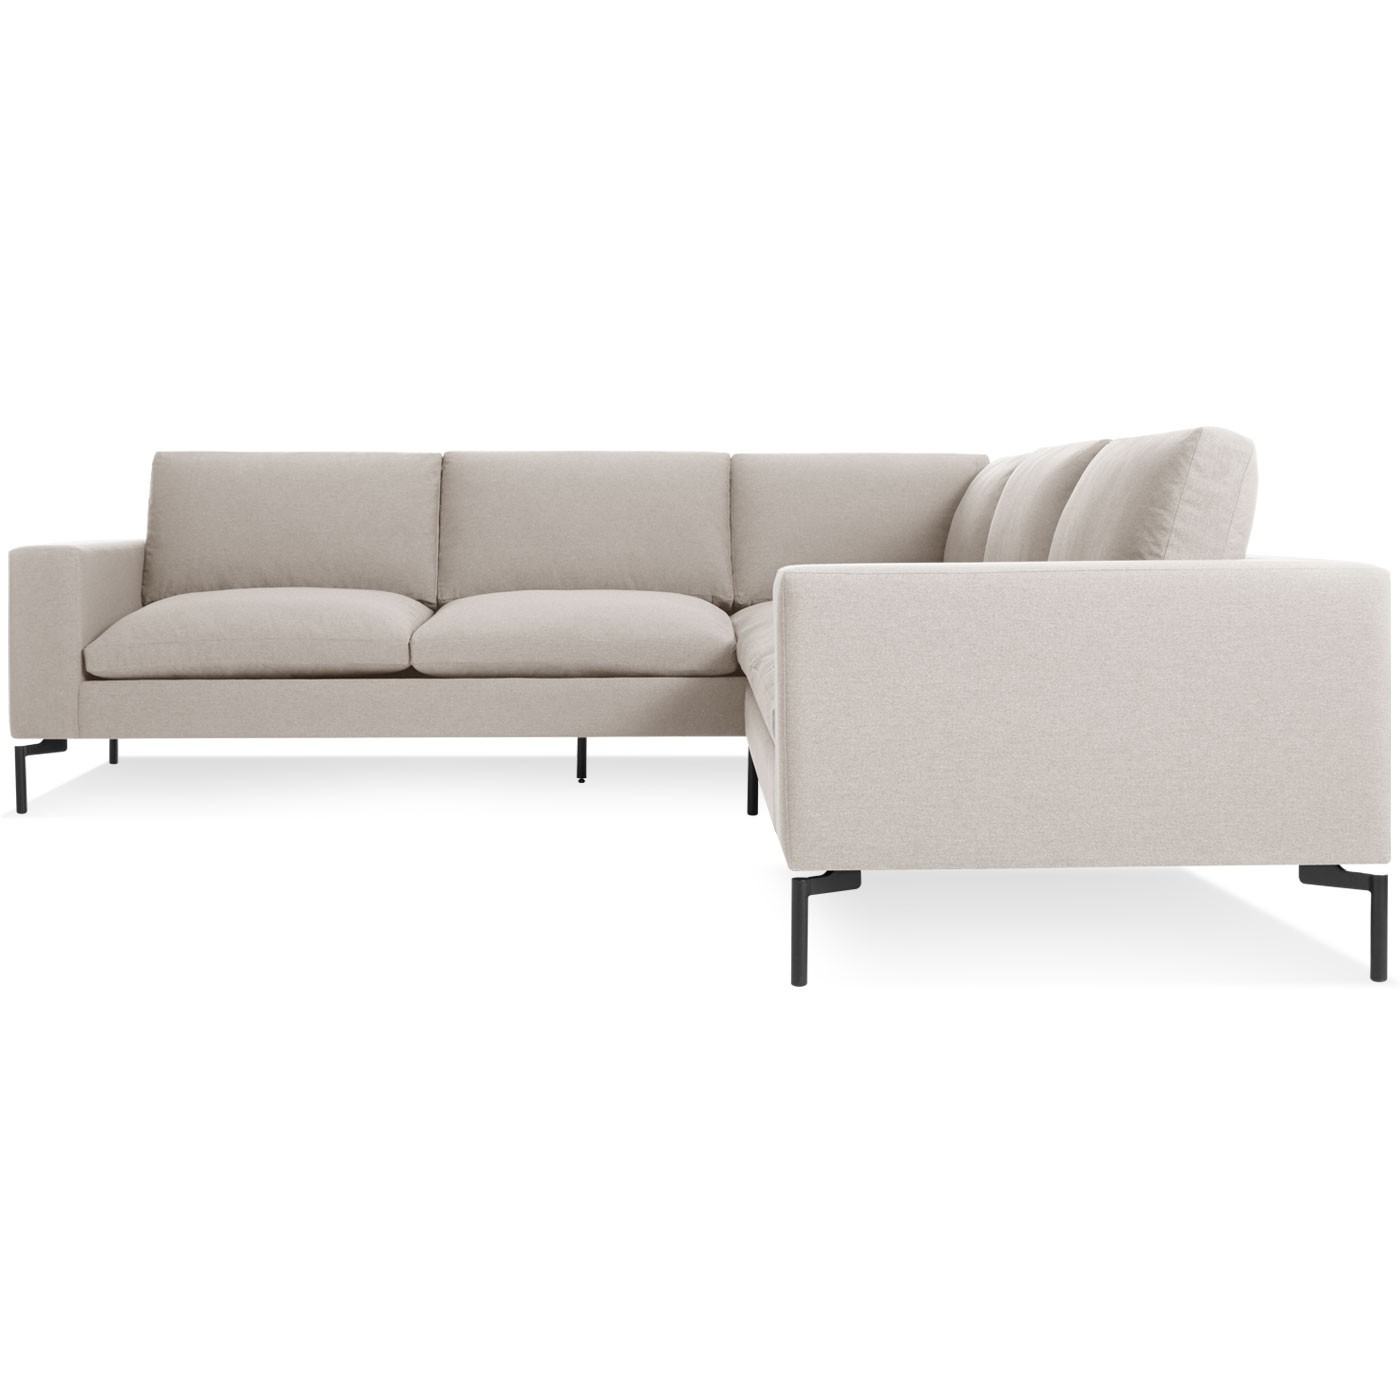 Small Sectional Sofa Philippines – 28 Images – Gorgeous Small Pertaining To Philippines Sectional Sofas (View 2 of 10)